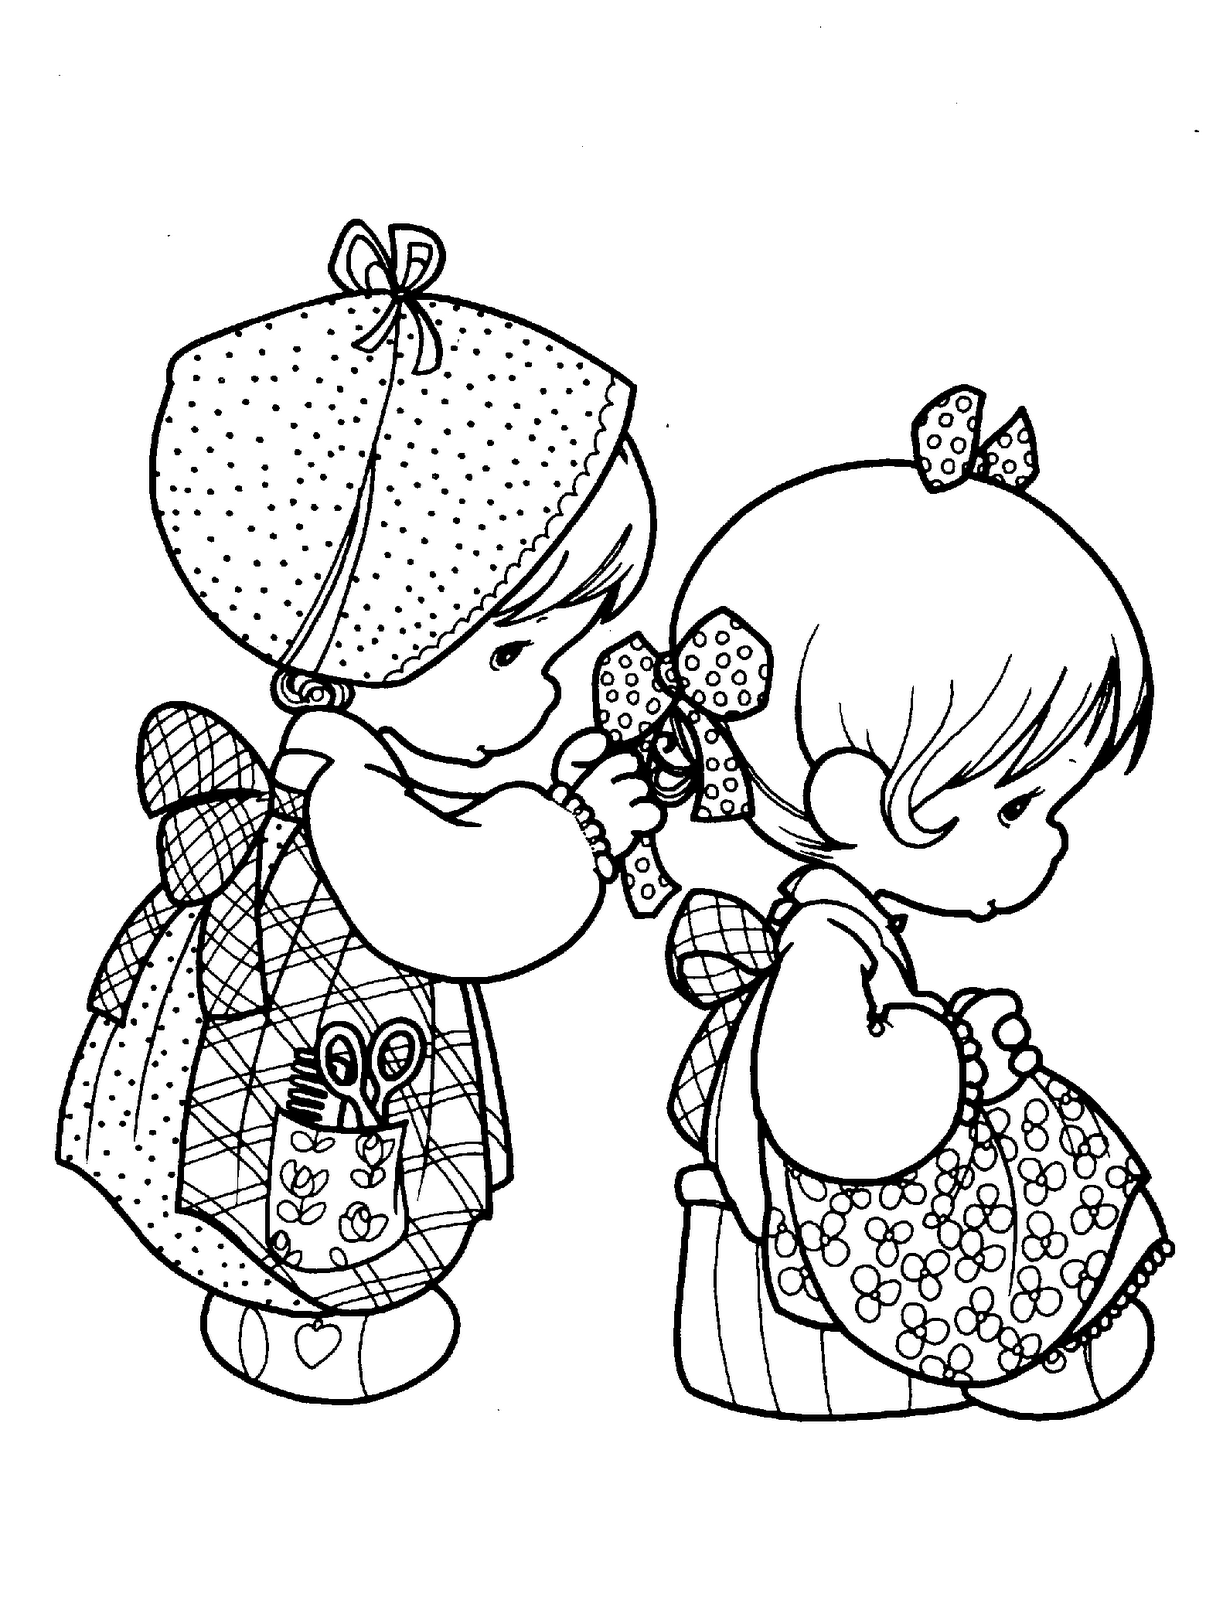 Printable 13 Precious Moments Praying Coloring Pages 7336